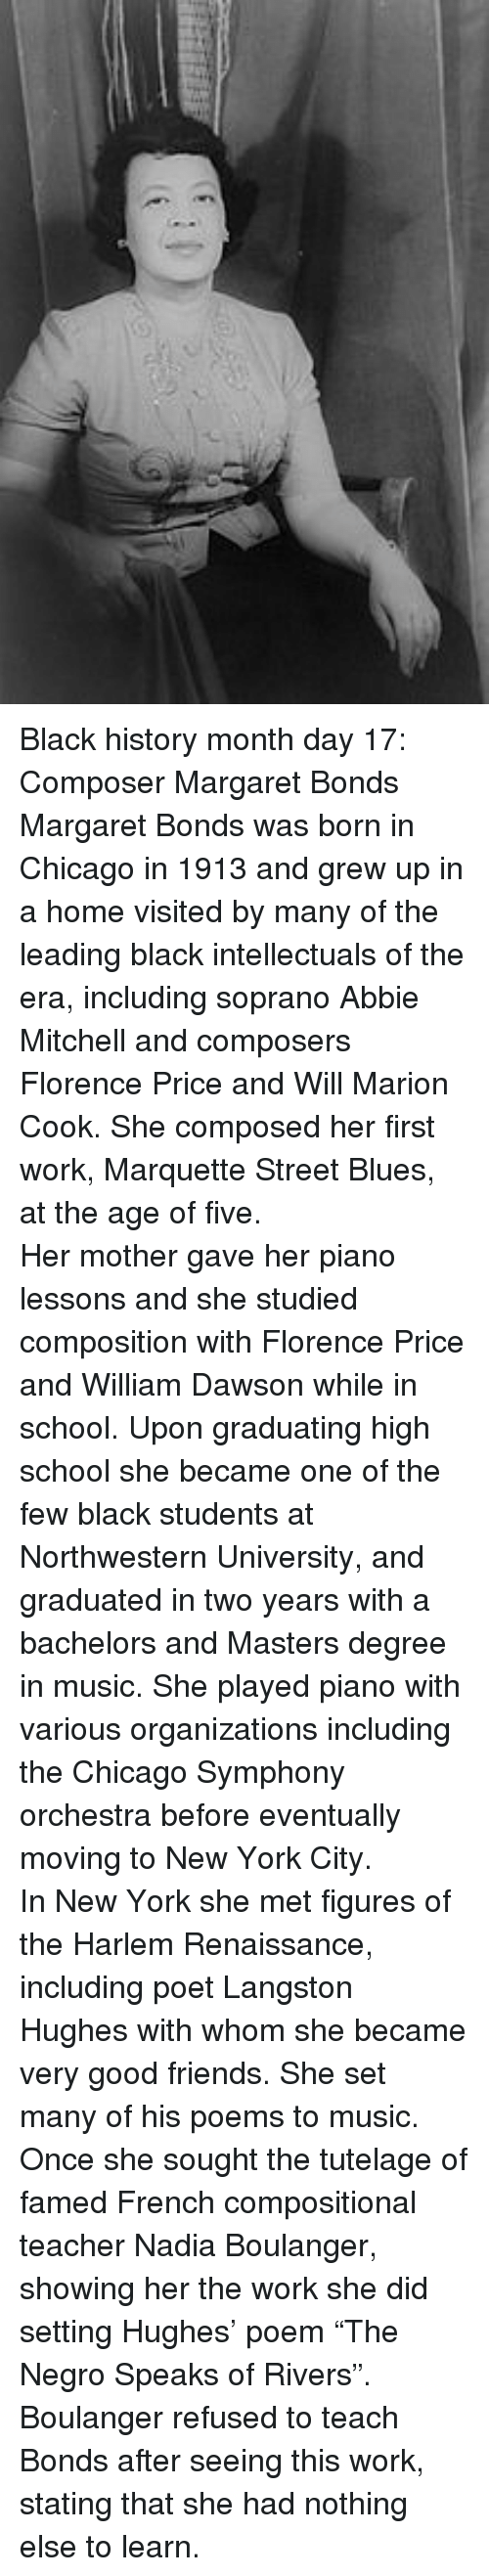 """Langston: <p>Black history month day 17: Composer Margaret Bonds</p>  <p>Margaret Bonds was born in Chicago in 1913 and grew up in a home visited by many of the leading black intellectuals of the era, including soprano Abbie Mitchell and composers Florence Price and Will Marion Cook. She composed her first work, Marquette Street Blues, at the age of five.</p>  <p>Her mother gave her piano lessons and she studied composition with Florence Price and William Dawson while in school. Upon graduating high school she became one of the few black students at Northwestern University, and graduated in two years with a bachelors and Masters degree in music. She played piano with various organizations including the Chicago Symphony orchestra before eventually moving to New York City.</p>  <p>In New York she met figures of the Harlem Renaissance, including poet Langston Hughes with whom she became very good friends. She set many of his poems to music. Once she sought the tutelage of famed French compositional teacher Nadia Boulanger, showing her the work she did setting Hughes' poem """"The Negro Speaks of Rivers"""". Boulanger refused to teach Bonds after seeing this work, stating that she had nothing else to learn.</p>"""